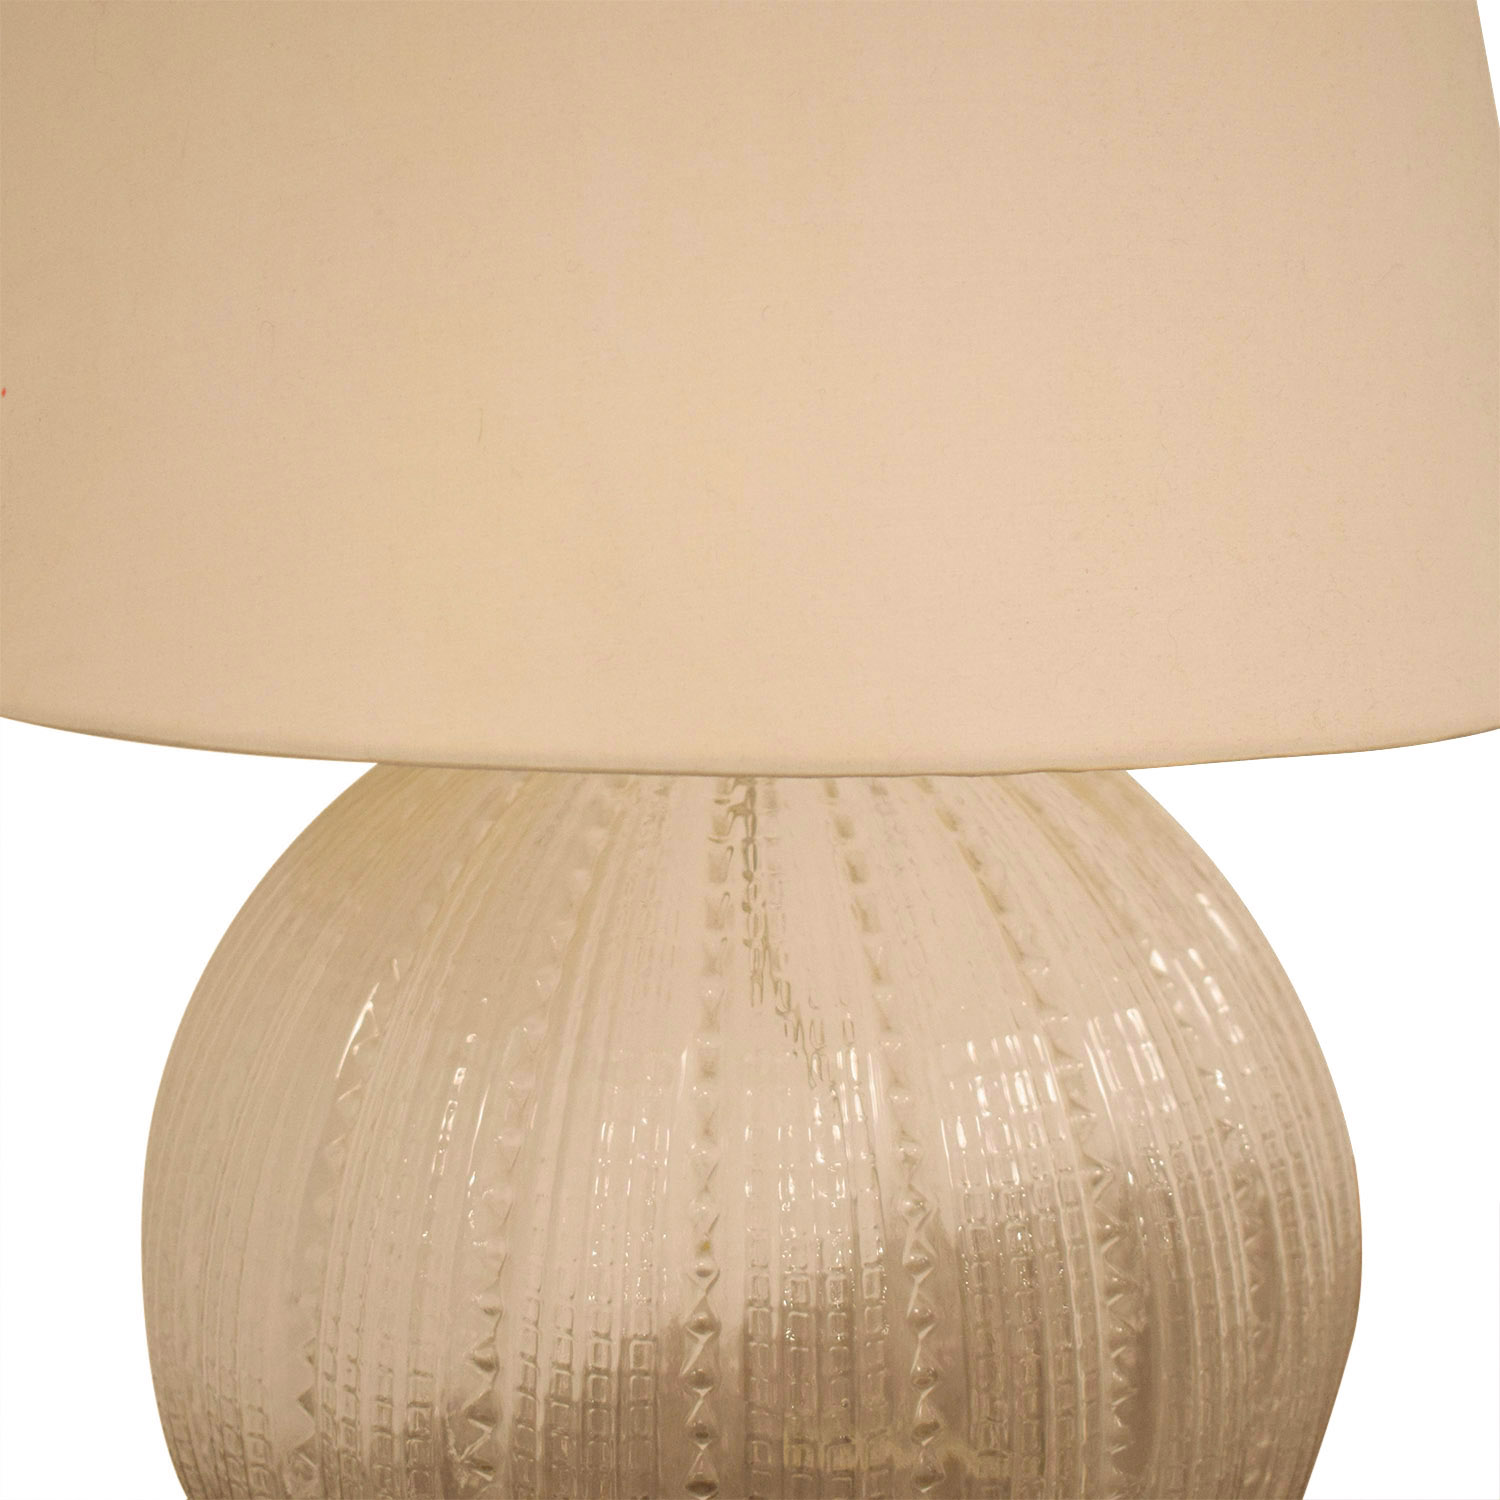 Crate & Barrel Crate & Barrel Glass Lamp and Shade nyc